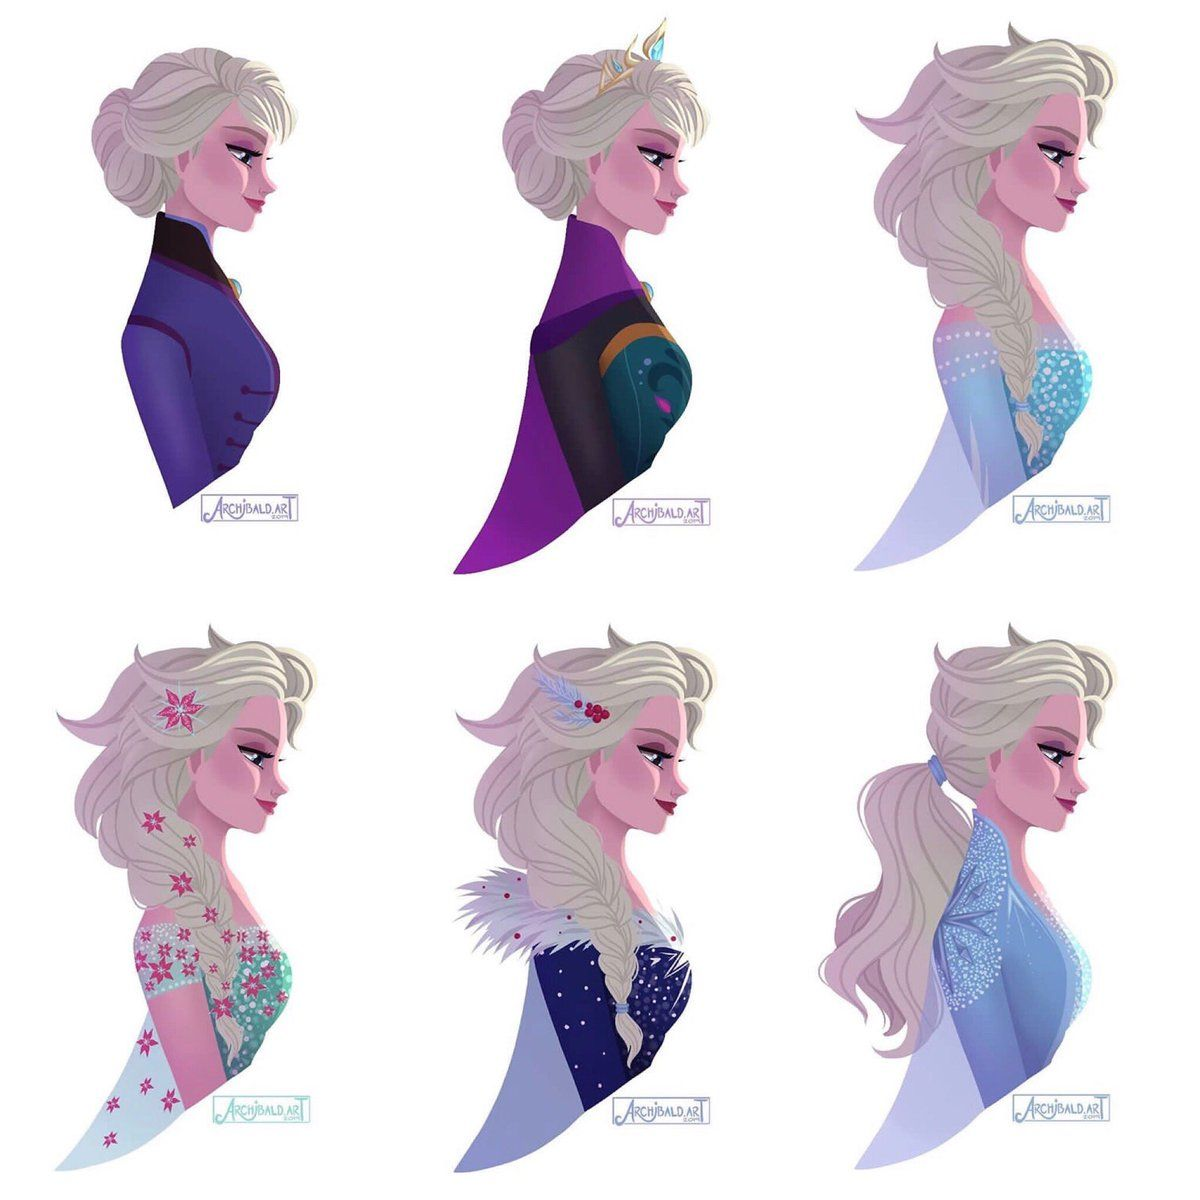 Frozen2 Hashtag On Twitter Disney Princess Art Disney Drawings Disney Art